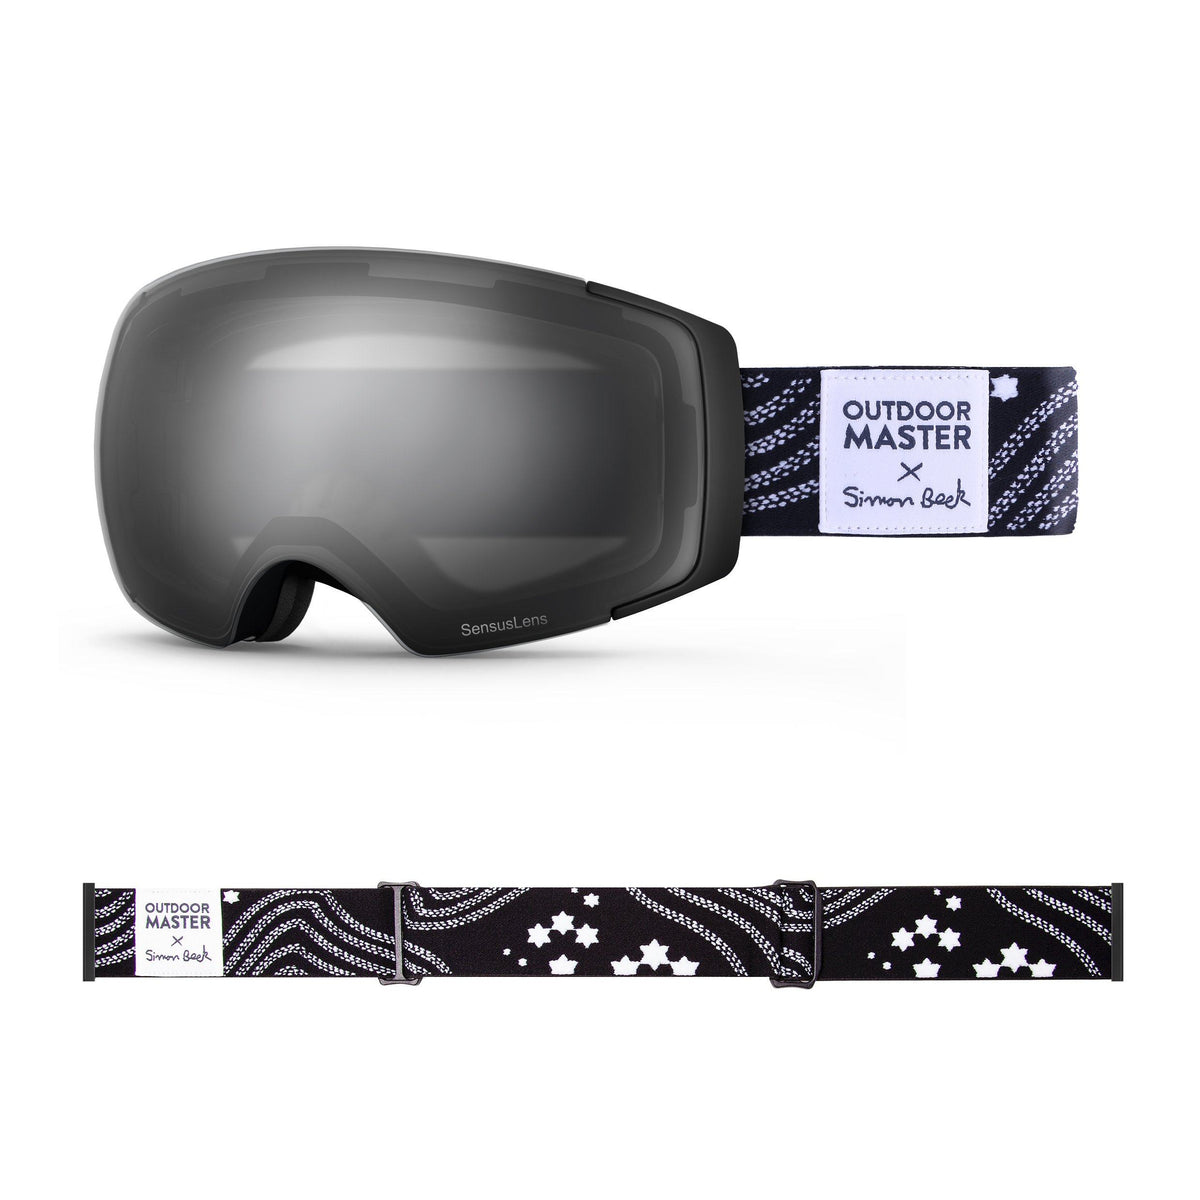 OutdoorMaster x Simon Beck Ski Goggles Pro Series - Snowshoeing Art Limited Edition OutdoorMaster SensusLens VLT 13-60% From Light to Dark Grey Star Road-Black